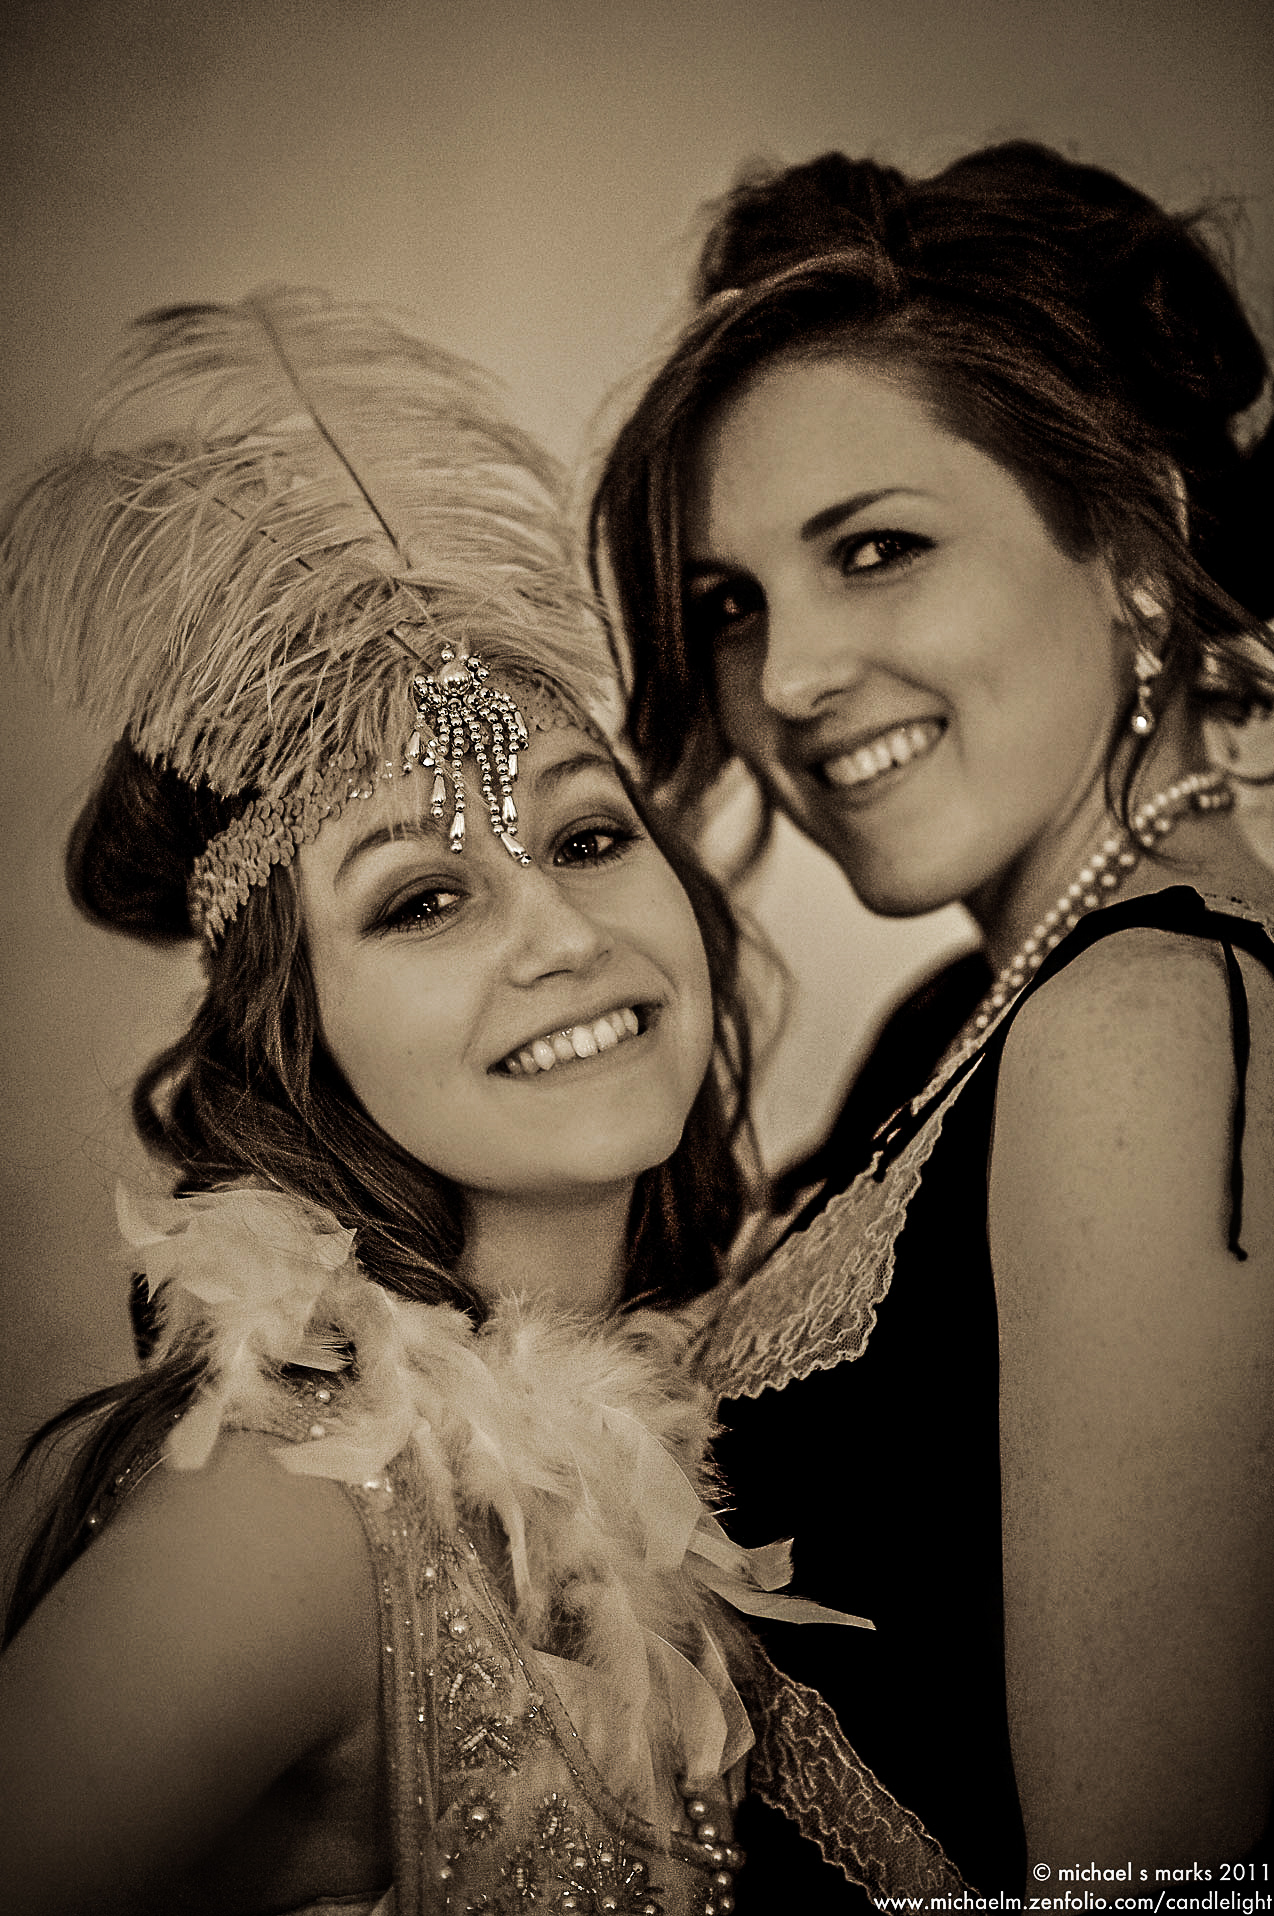 Two ladies in 1920s costume